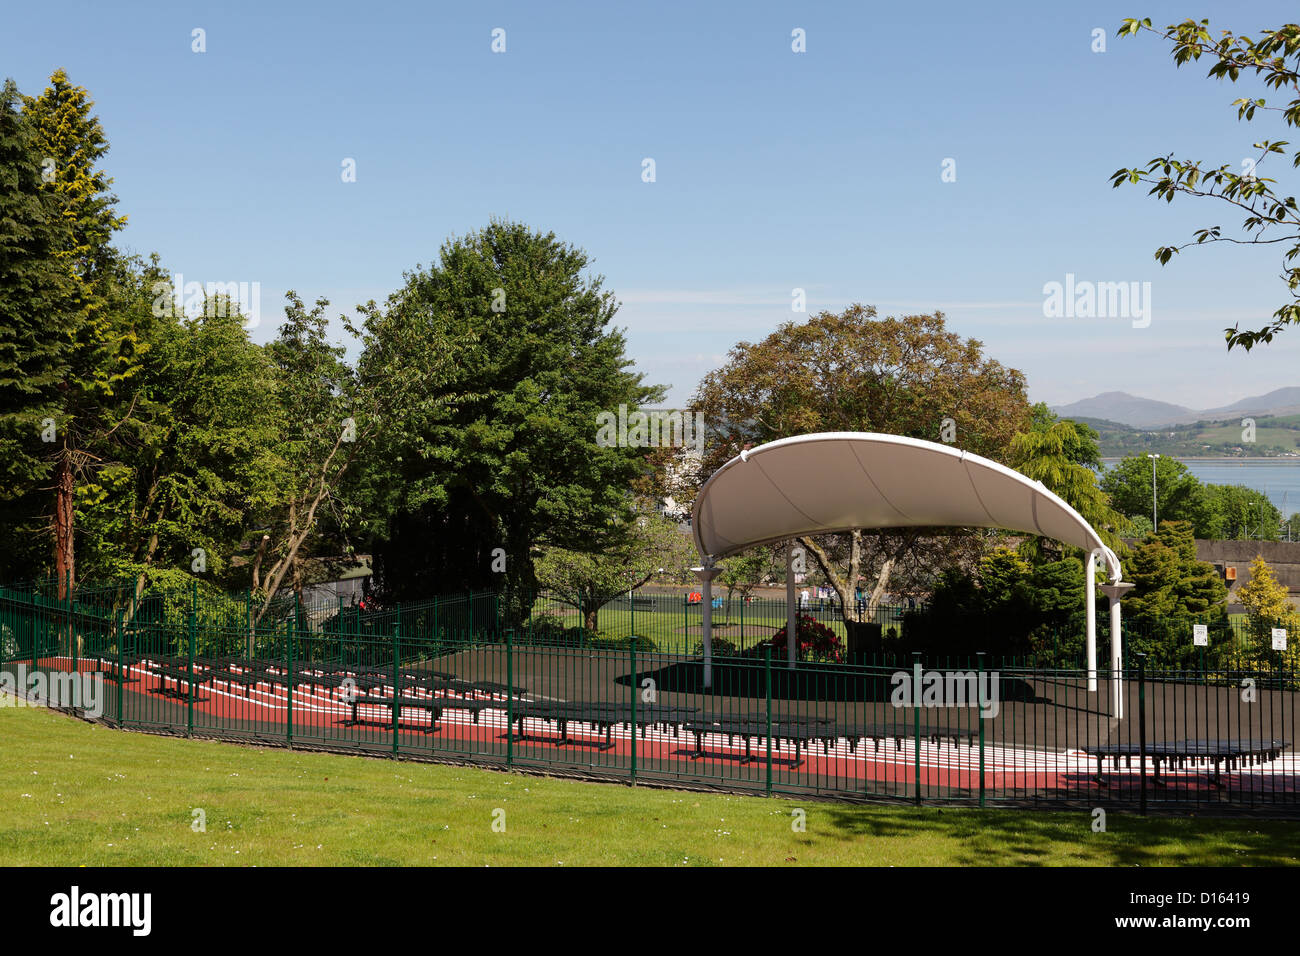 The bandstand in Gourock Public Park in the town of Gourock, Inverclyde, Scotland, UK - Stock Image